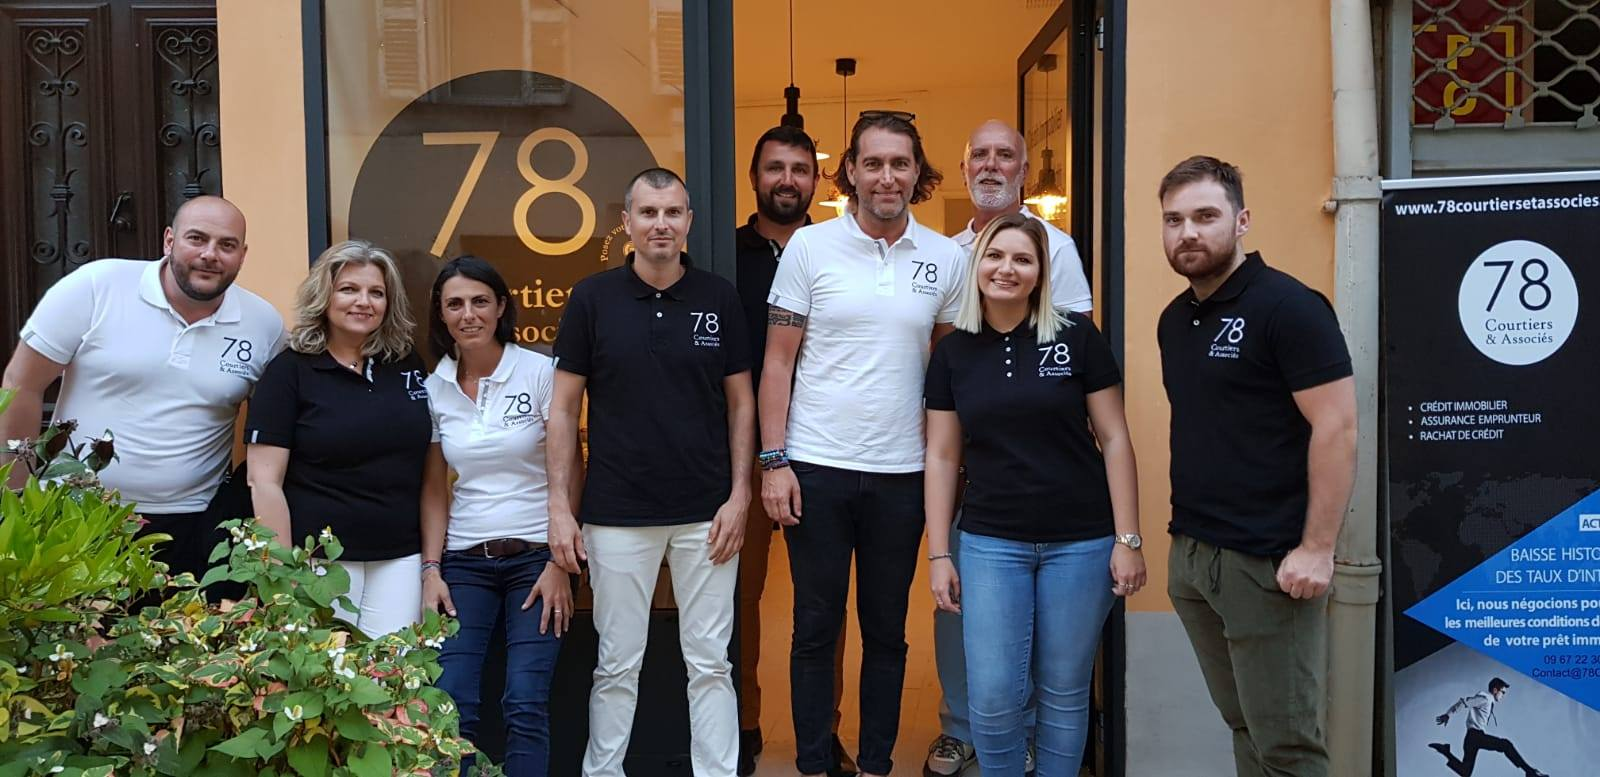 Agence Courtier Marseille, L'agence